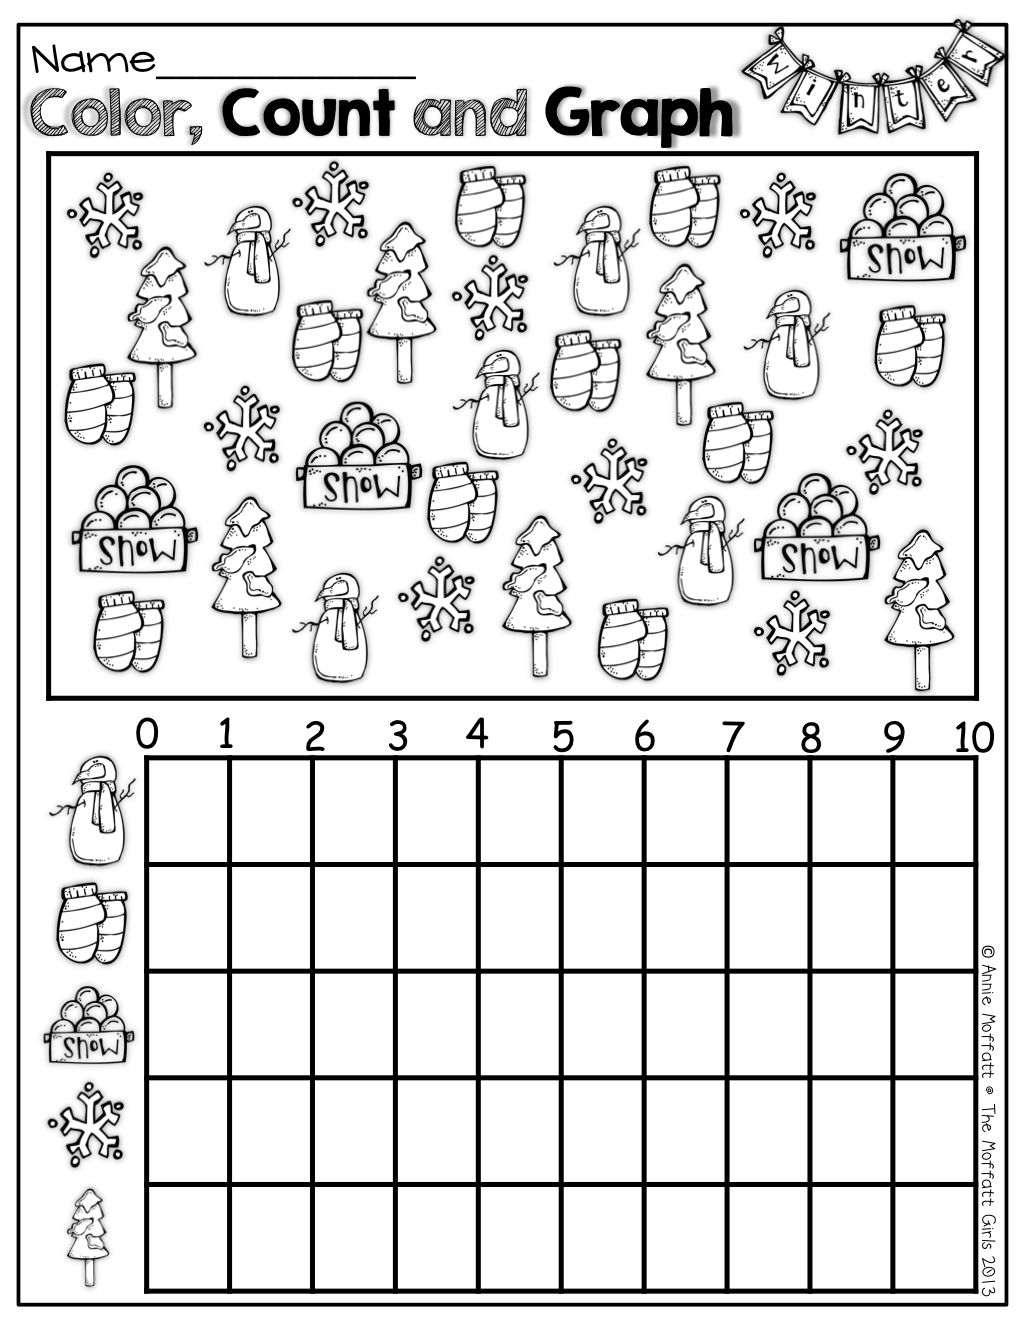 Worksheet Garden Graphing